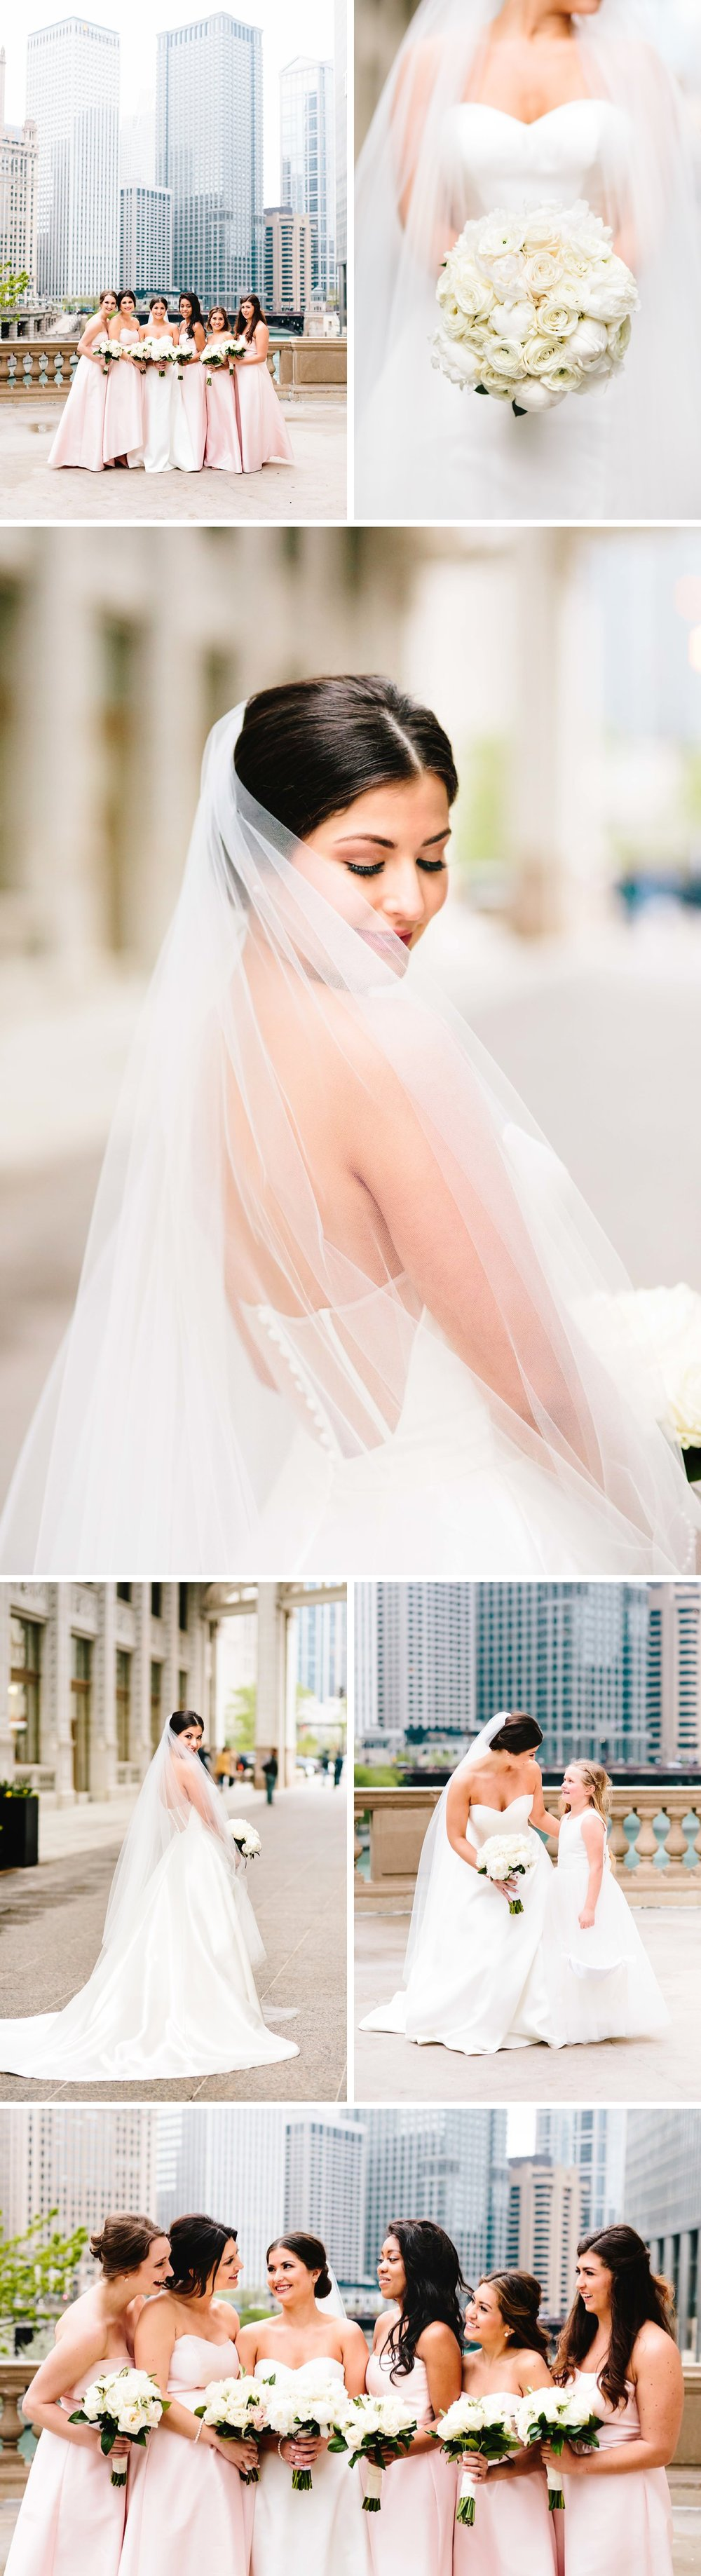 chicago-fine-art-wedding-photography-sherwood24